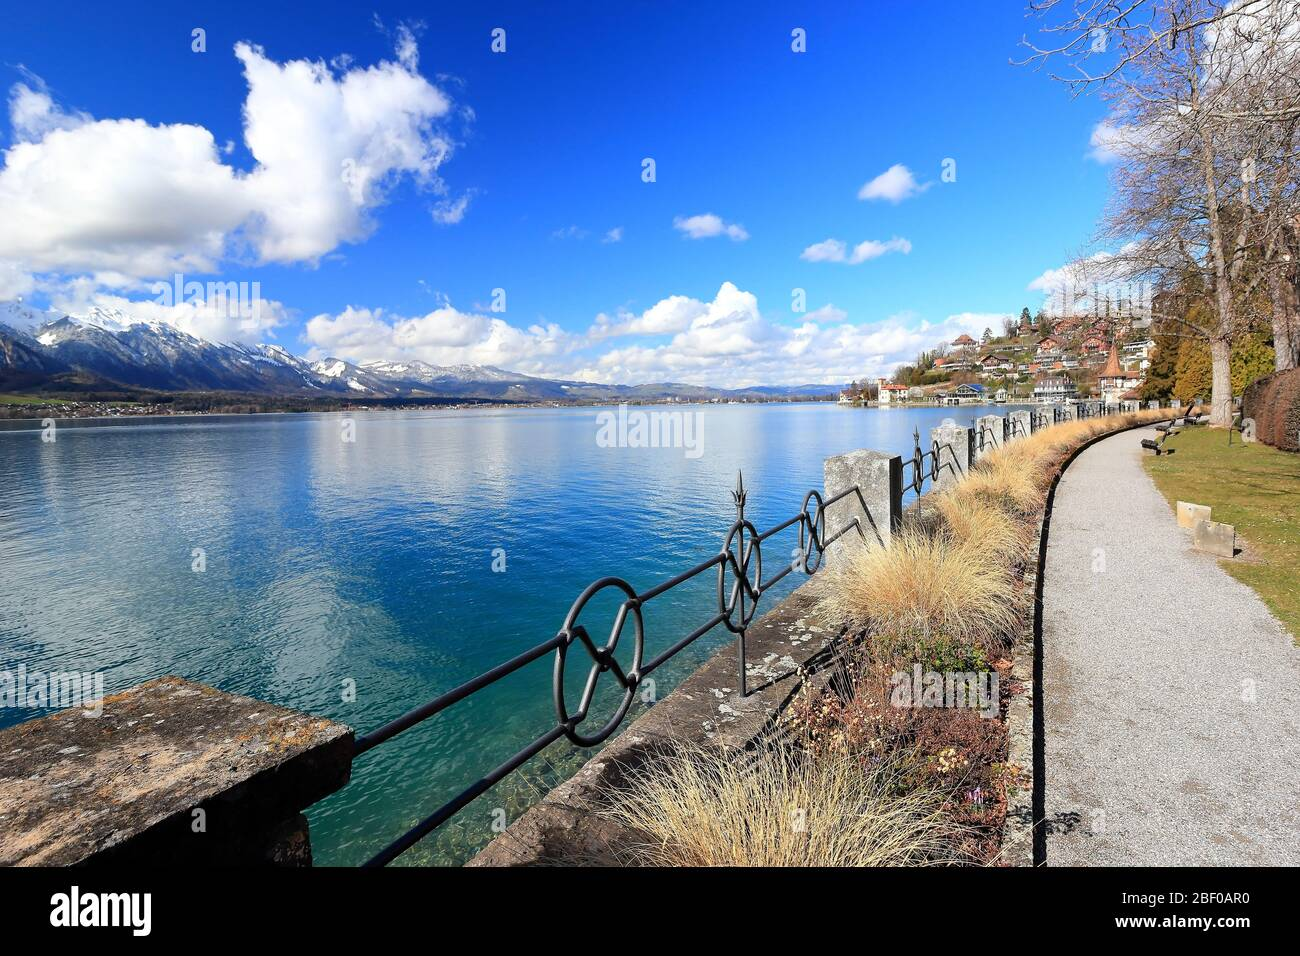 Oberhofen am Thunersee. The town is located on the northern shore of Lake Thun. Switzerland, Europe. Stock Photo